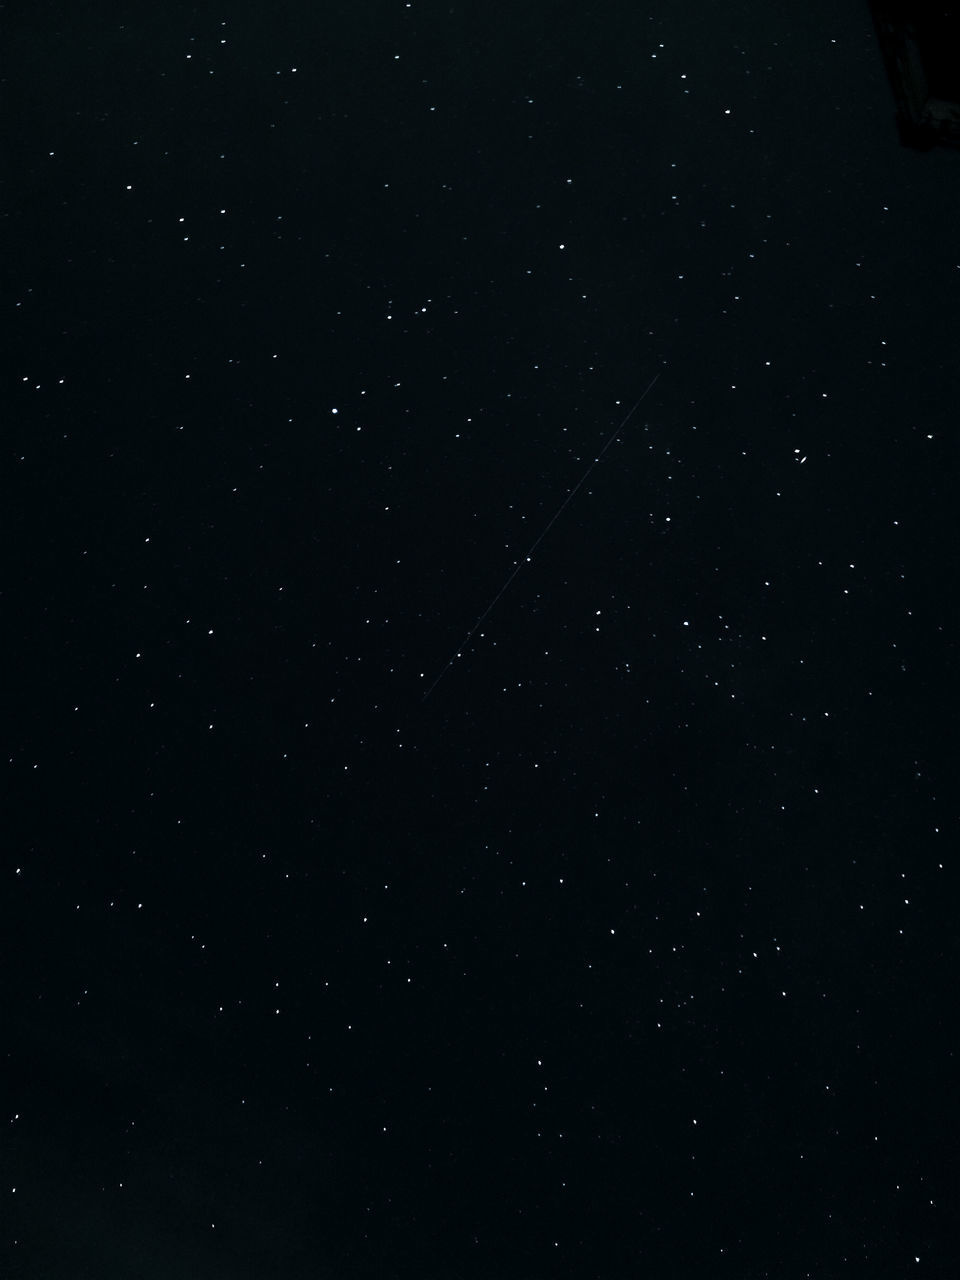 LOW ANGLE VIEW OF STAR FIELD IN SKY